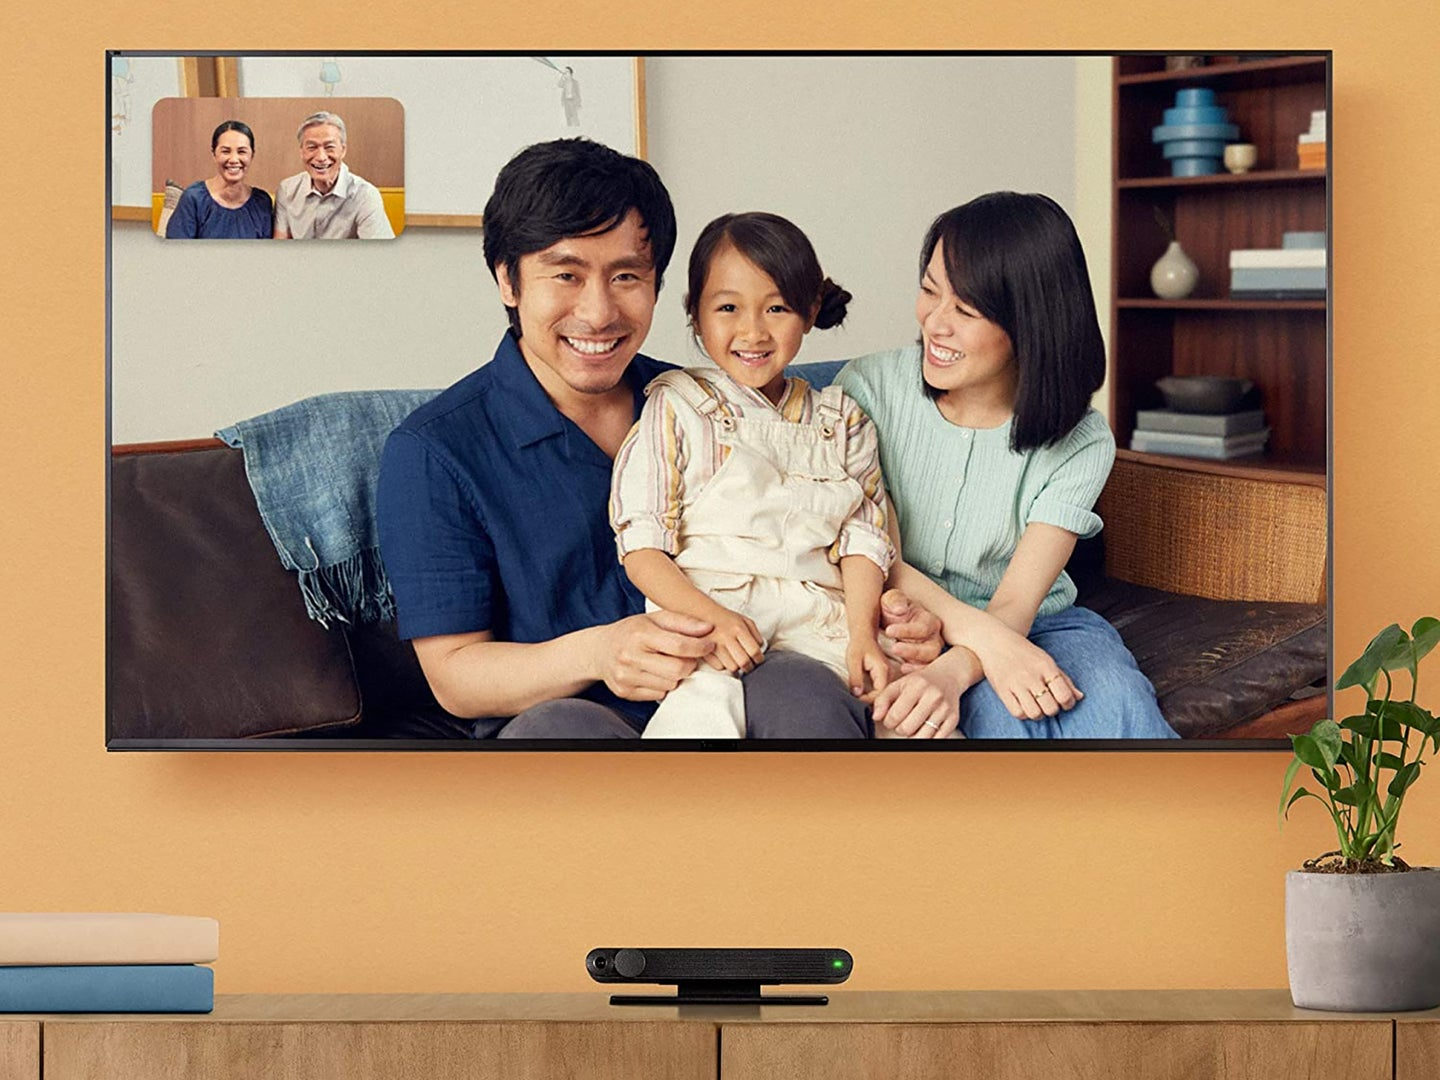 a TV with a family video chatting on it over a video call